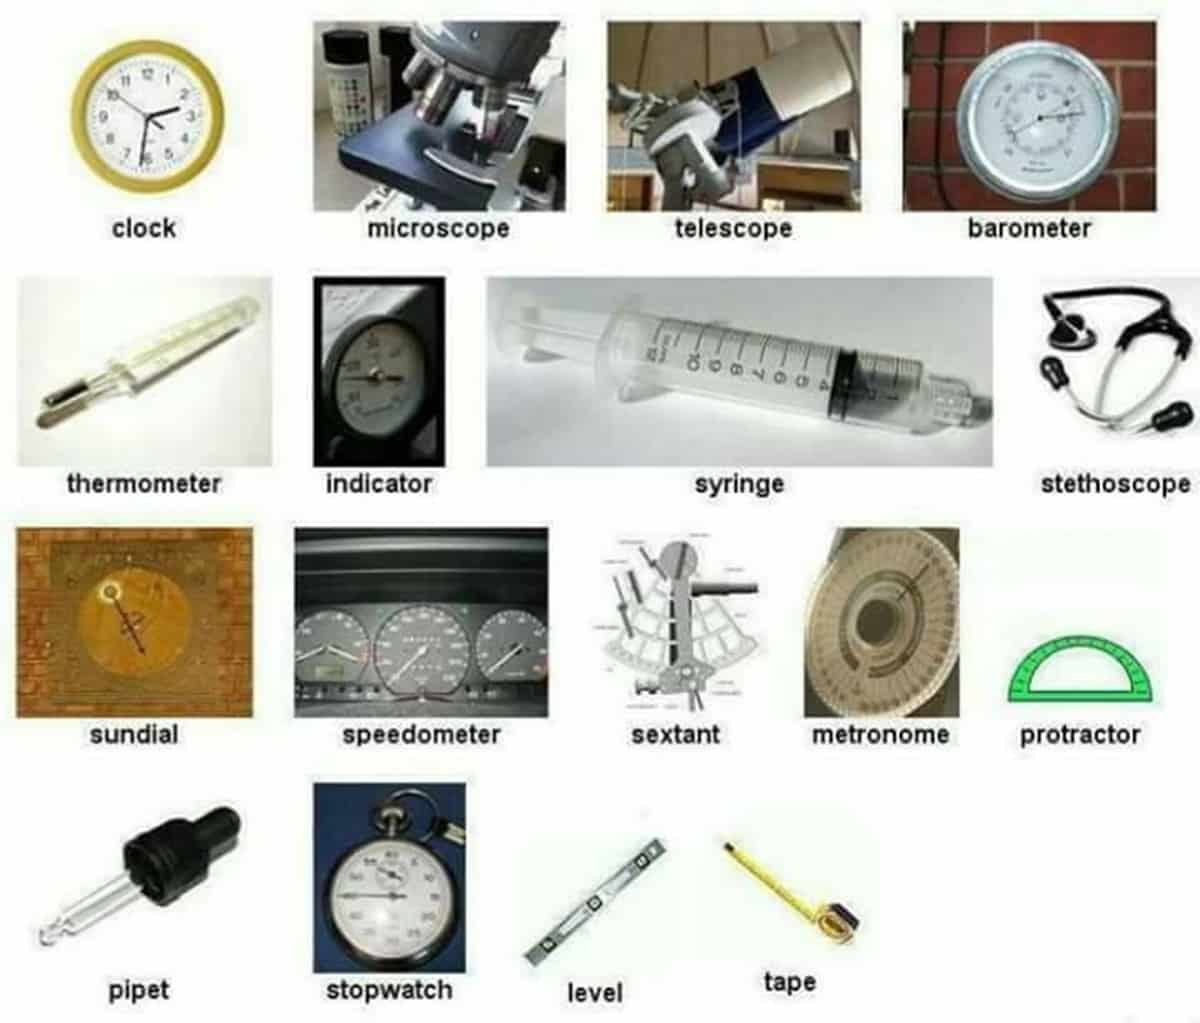 English Vocabulary: Laboratory Equipment and Scientific Instruments 2